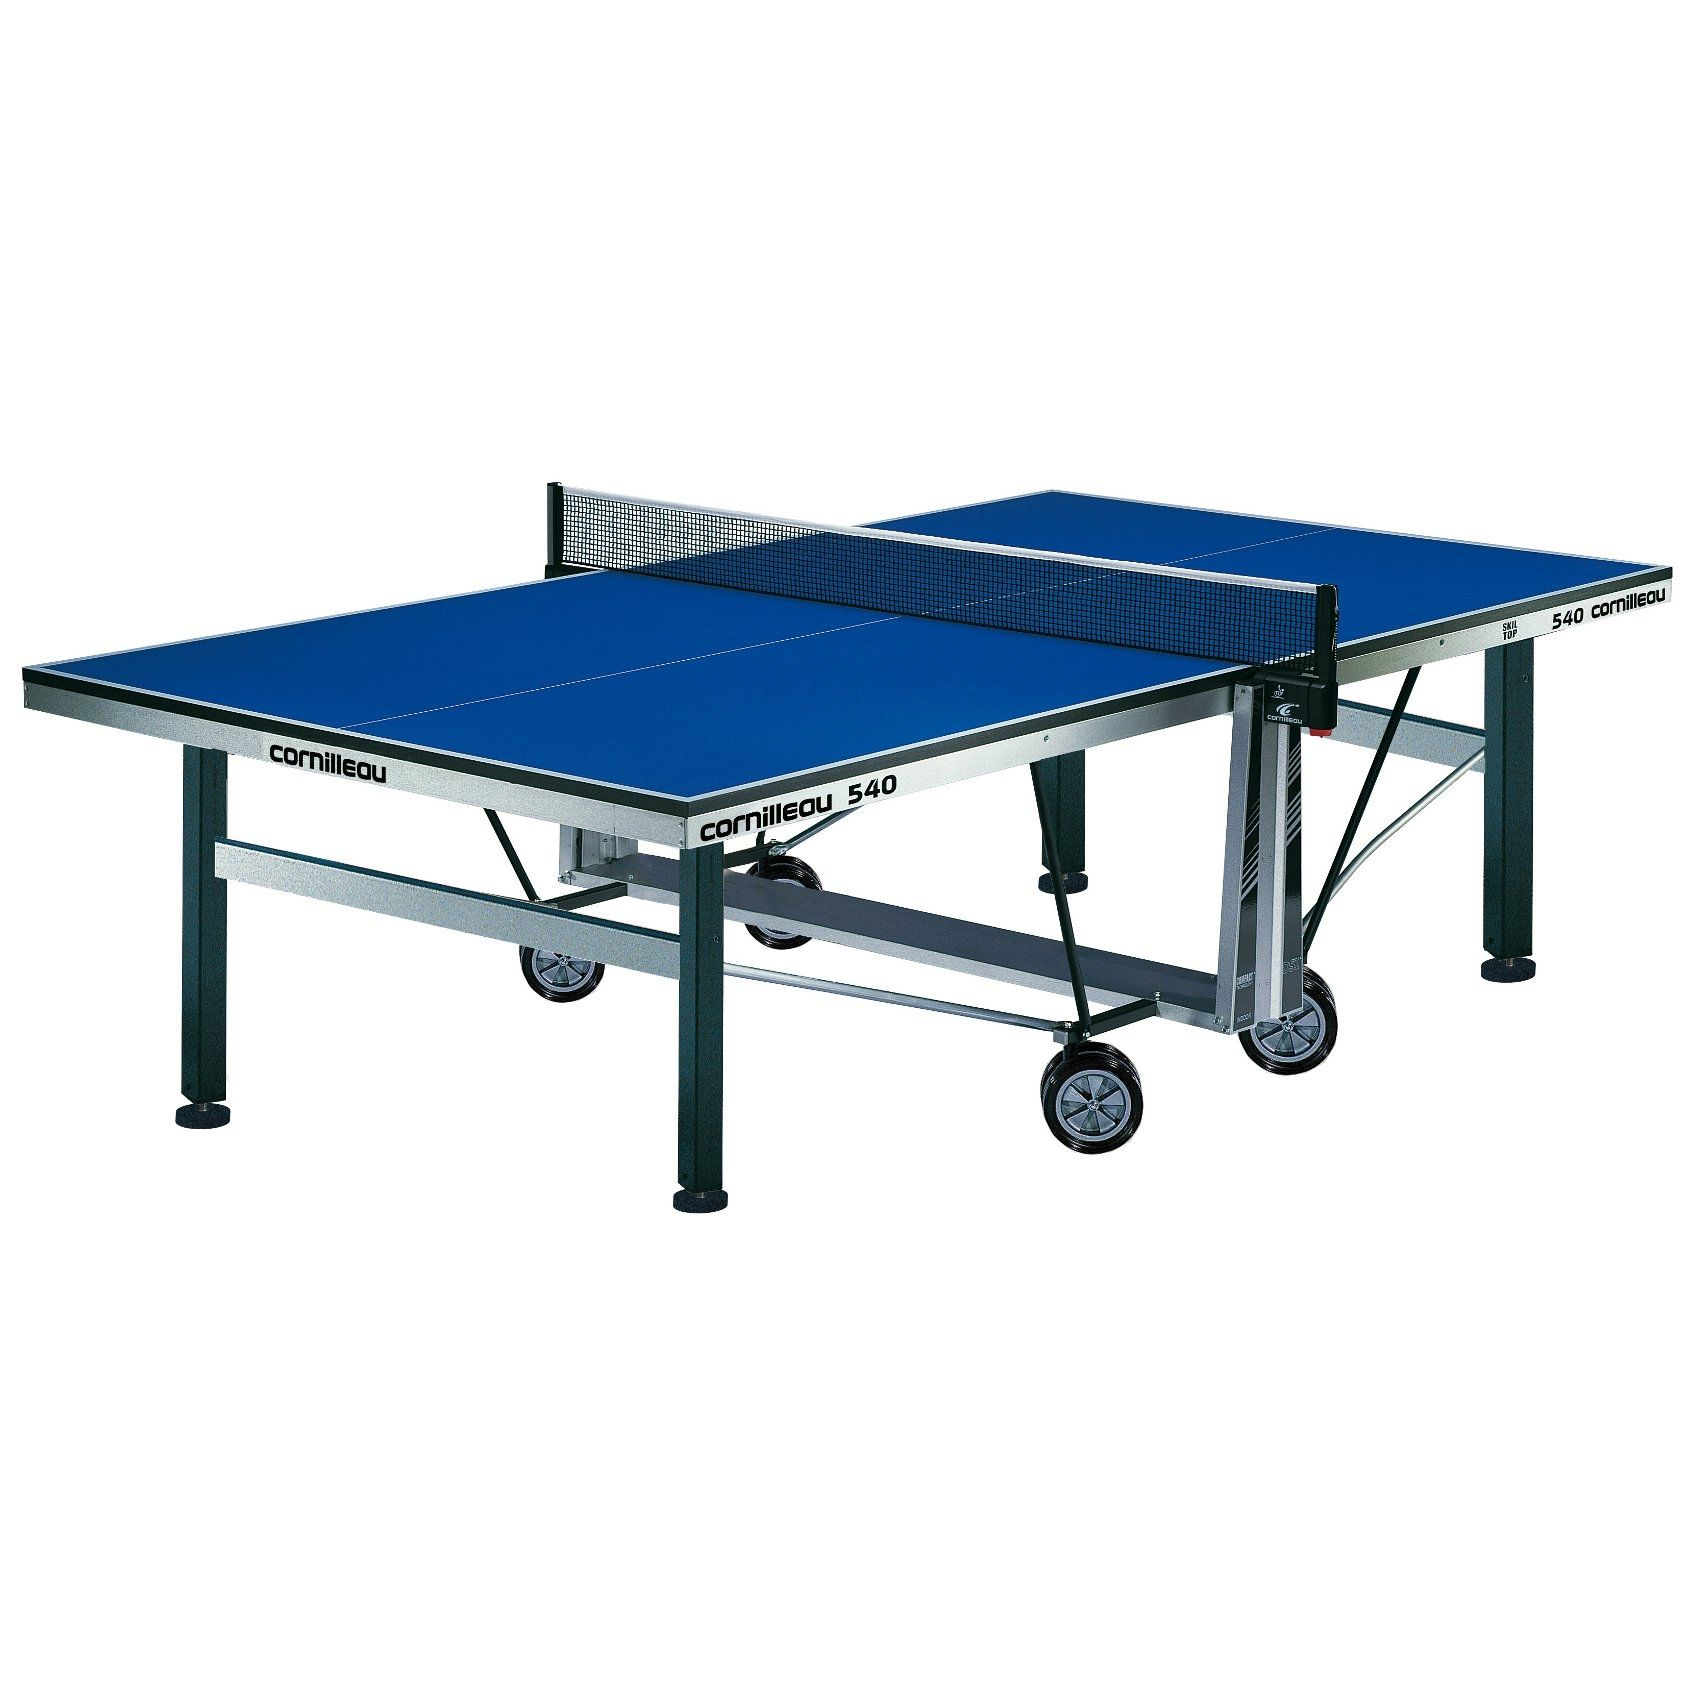 Cornilleau competition 540 rollaway table tennis table - Table tennis de table cornilleau outdoor ...